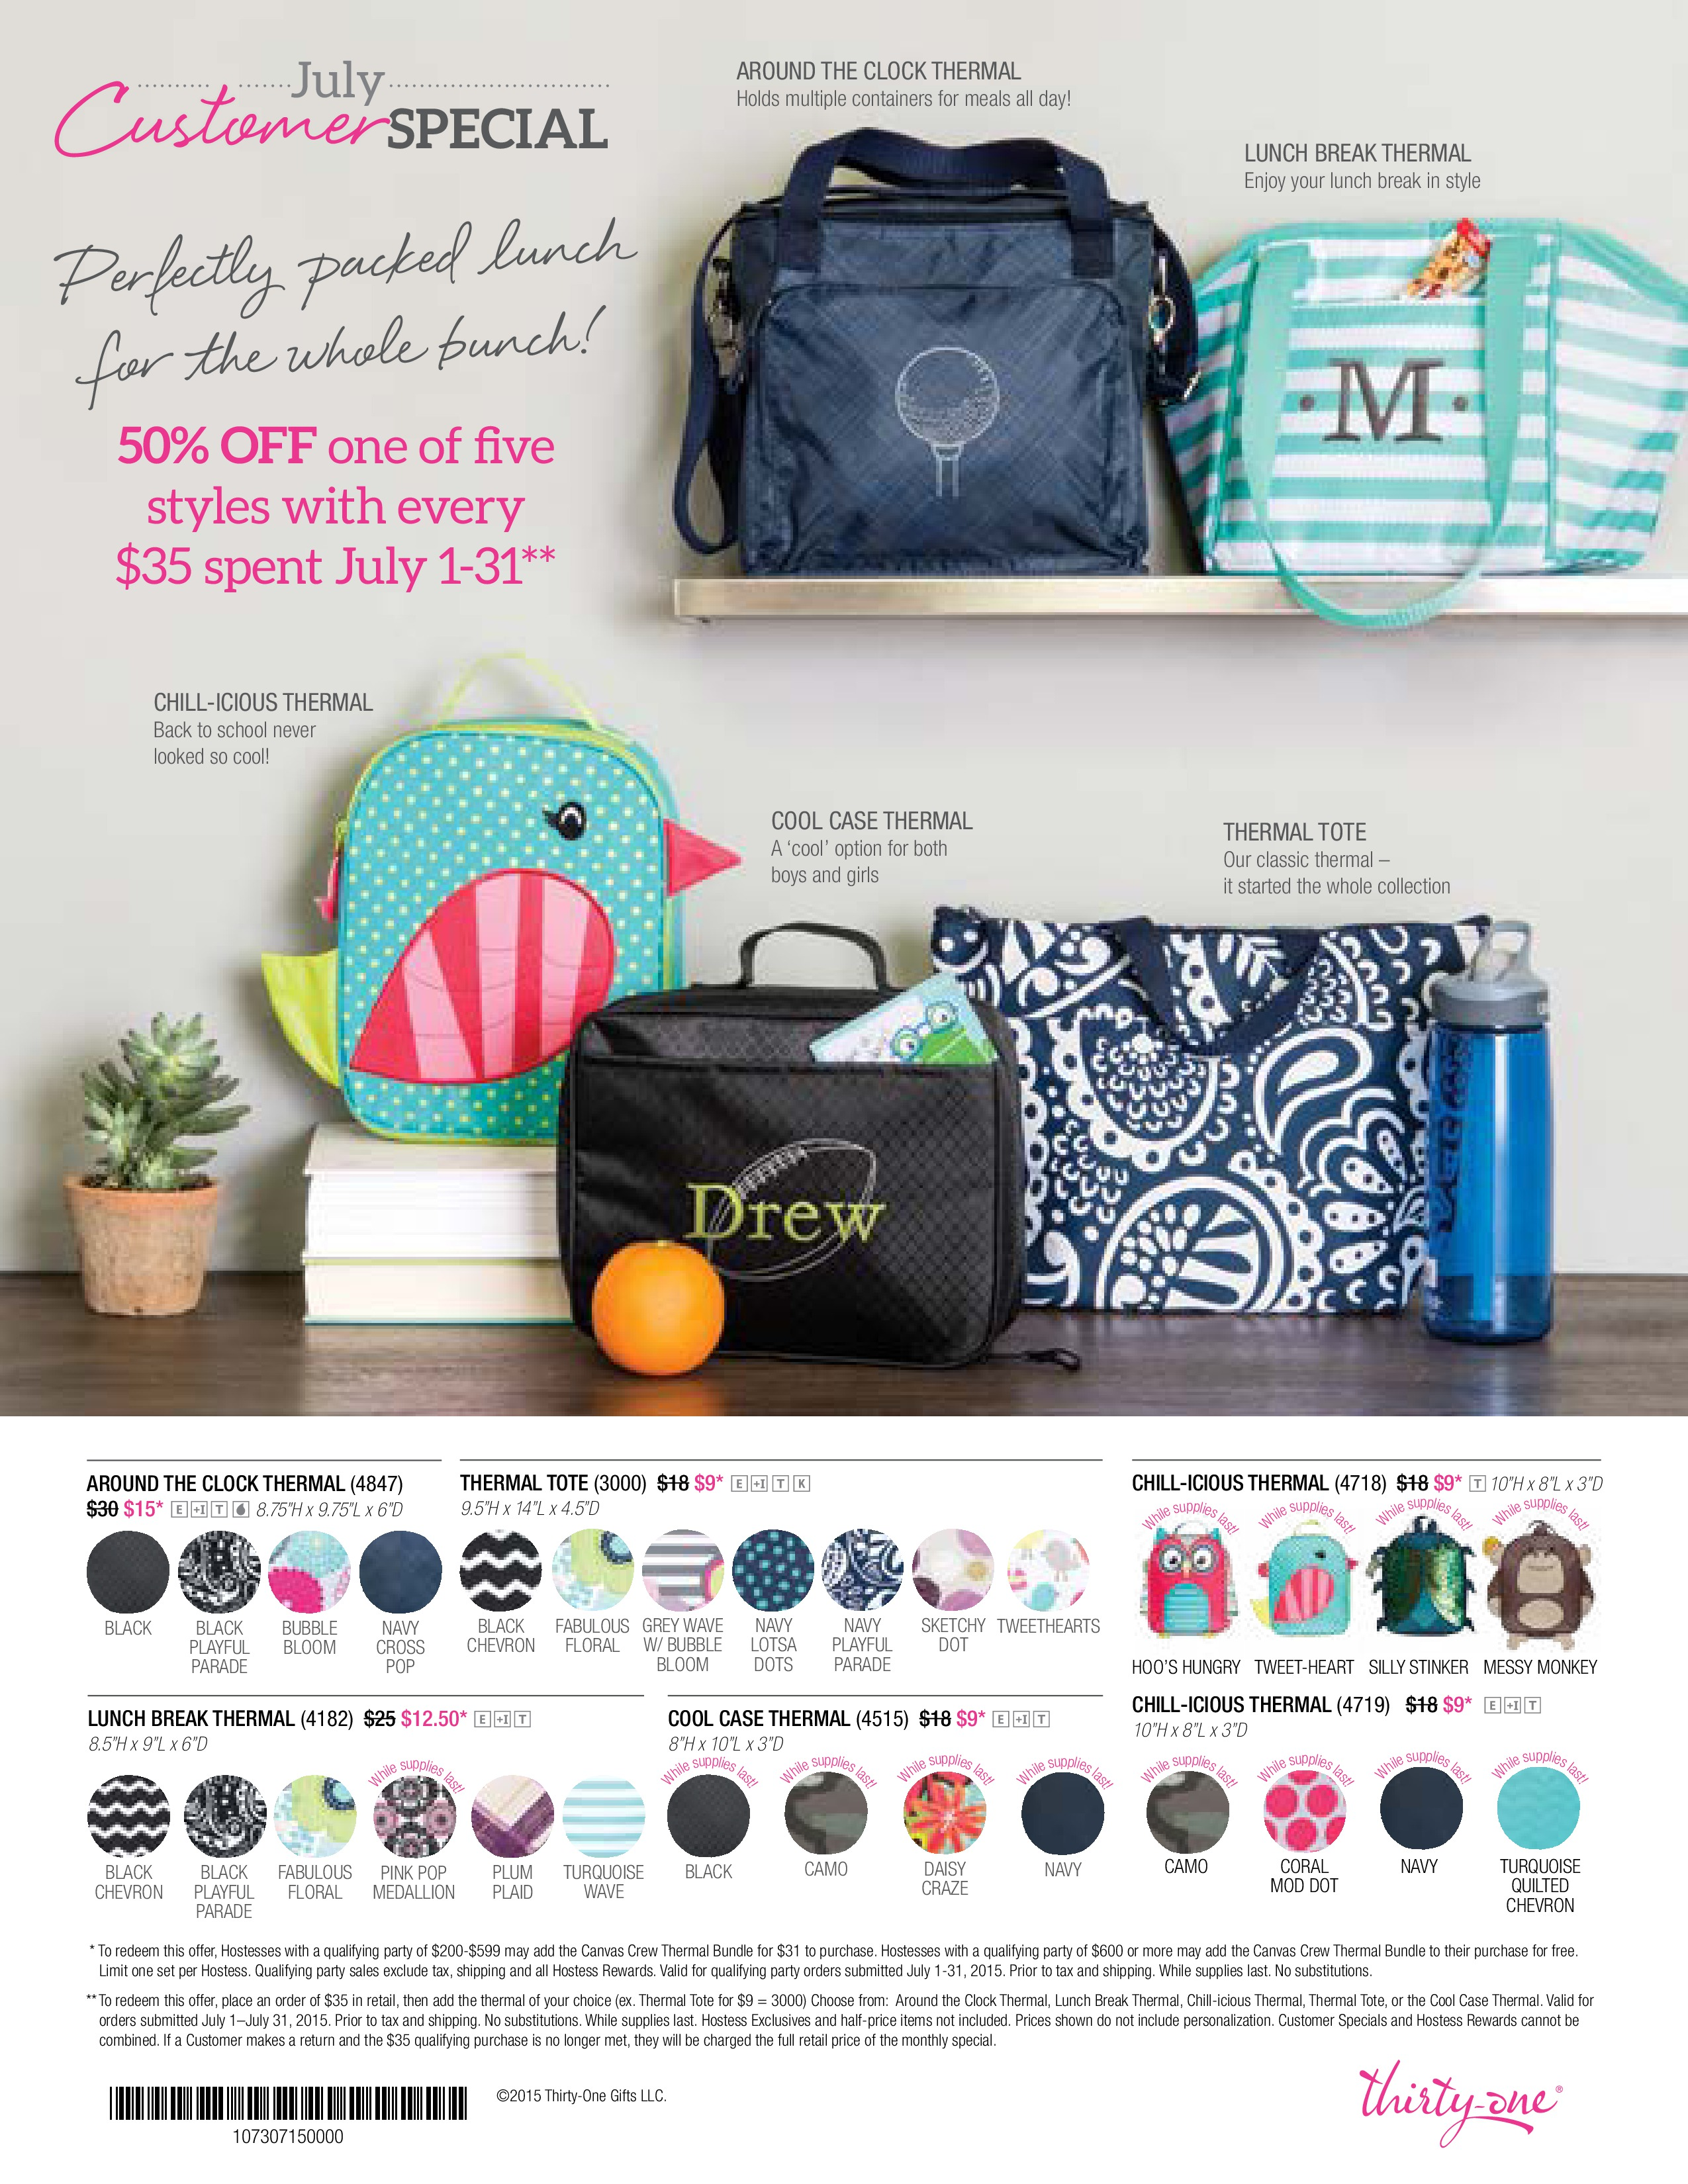 One of Thirty One Gifts most popular items, the Large Utility Tote Amazon's Choice for